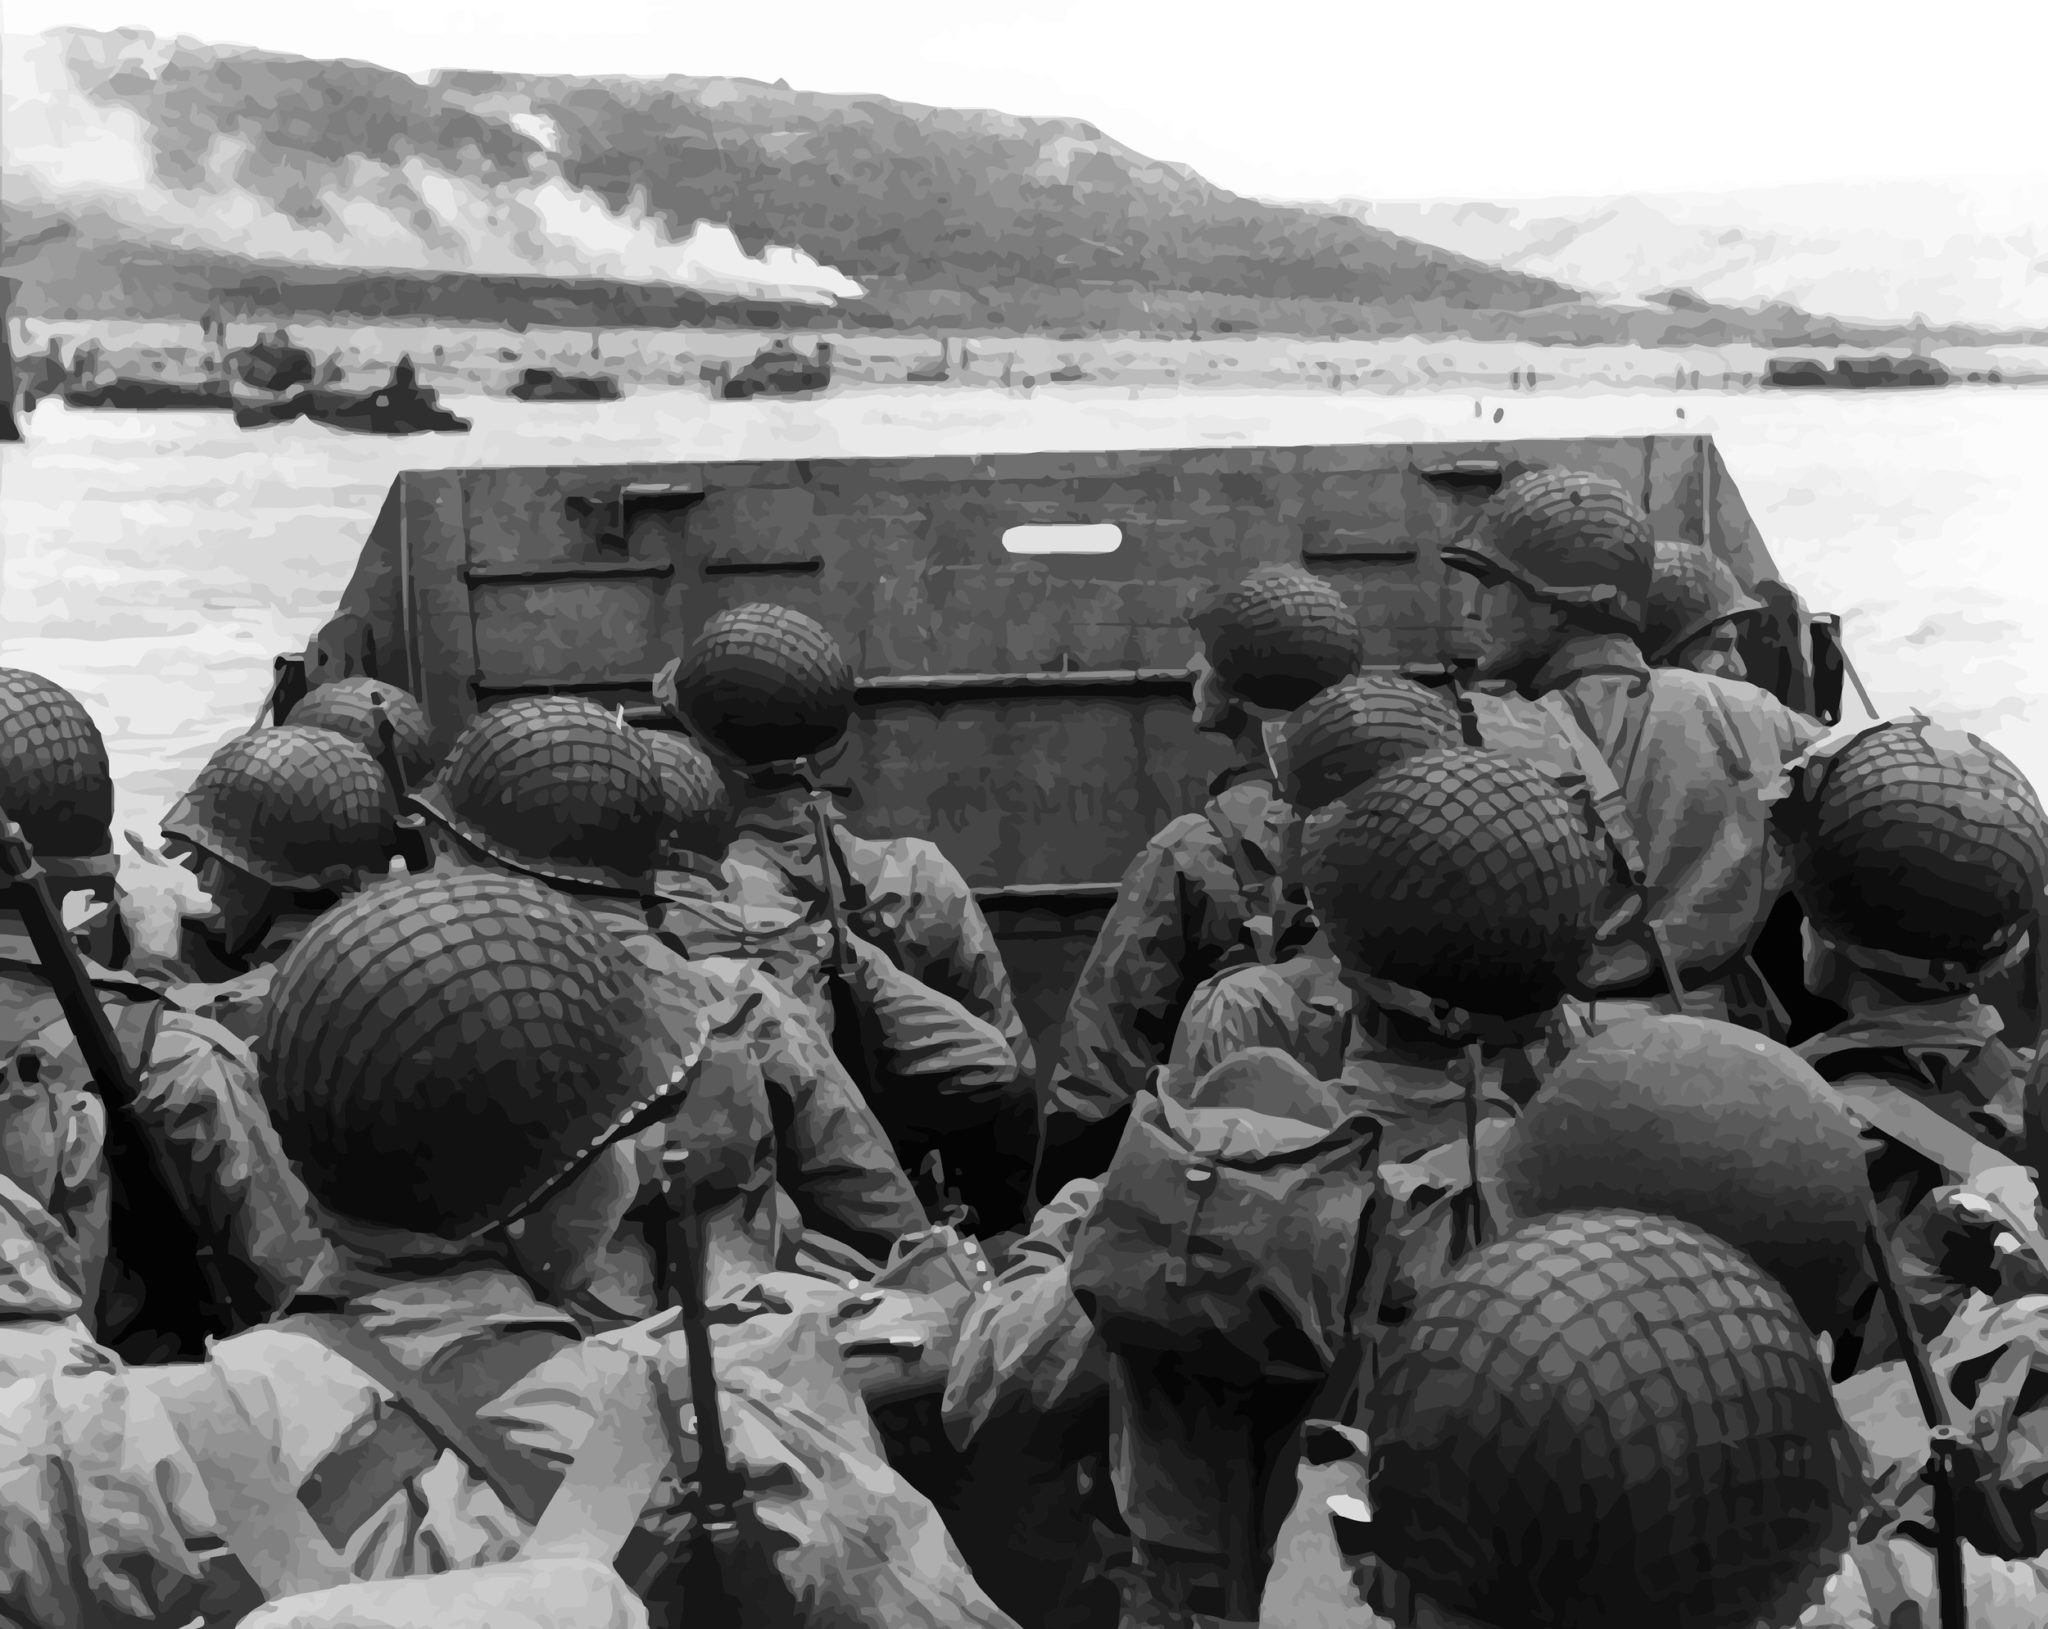 Air Force museum's new D-Day exhibit: 'I wanted him to see what his grandpa went through'